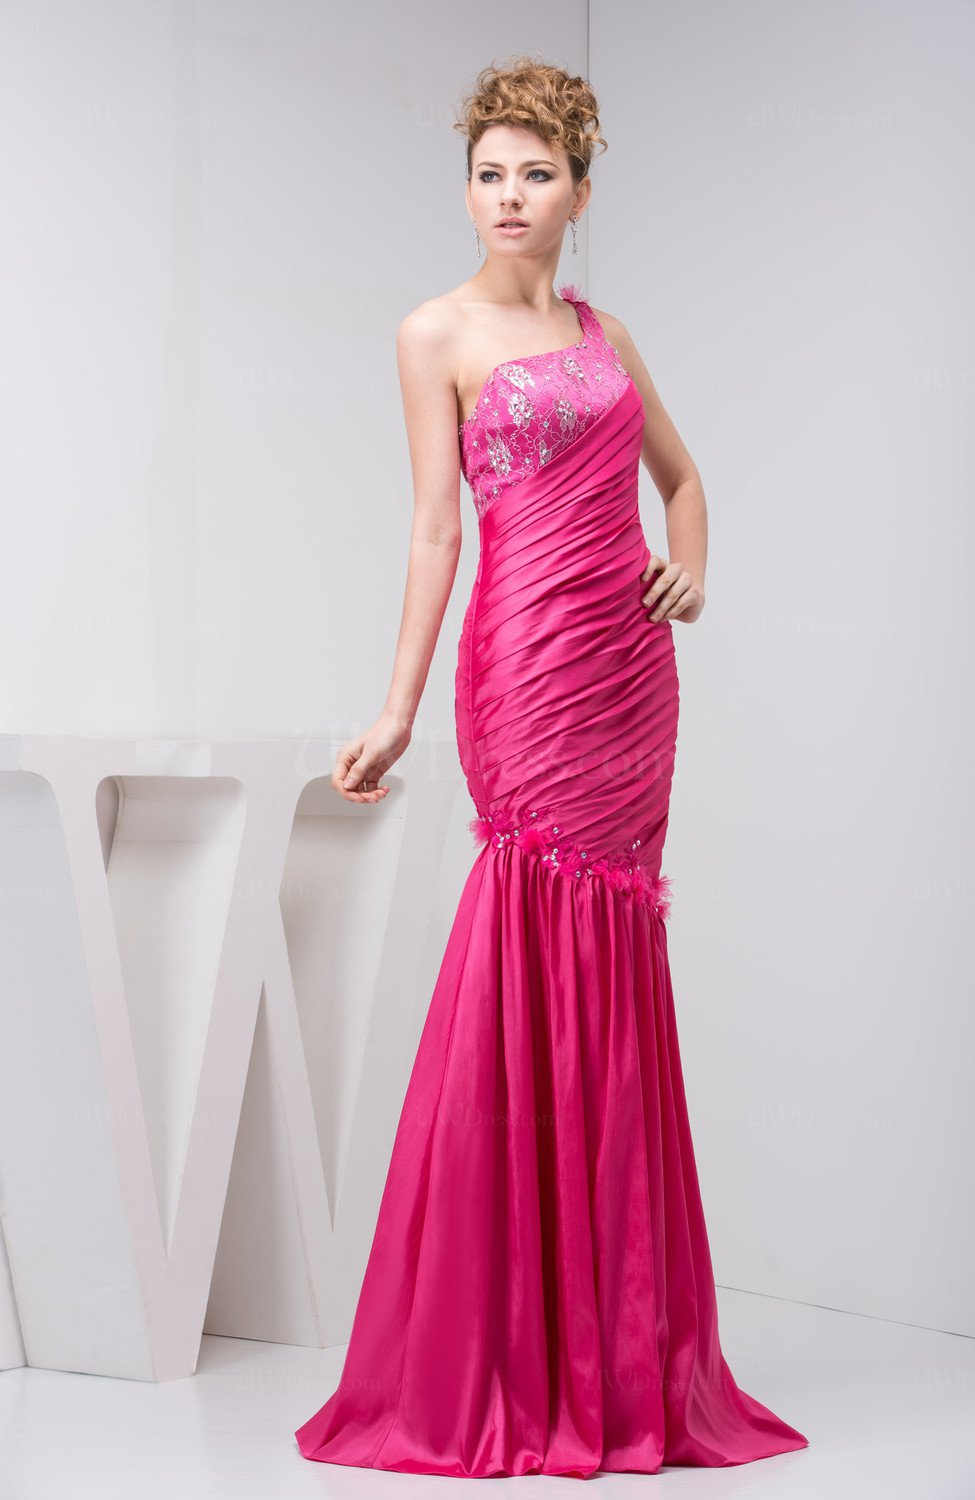 Fuschia Casual Wedding Guest Dress Inexpensive Luxury ...